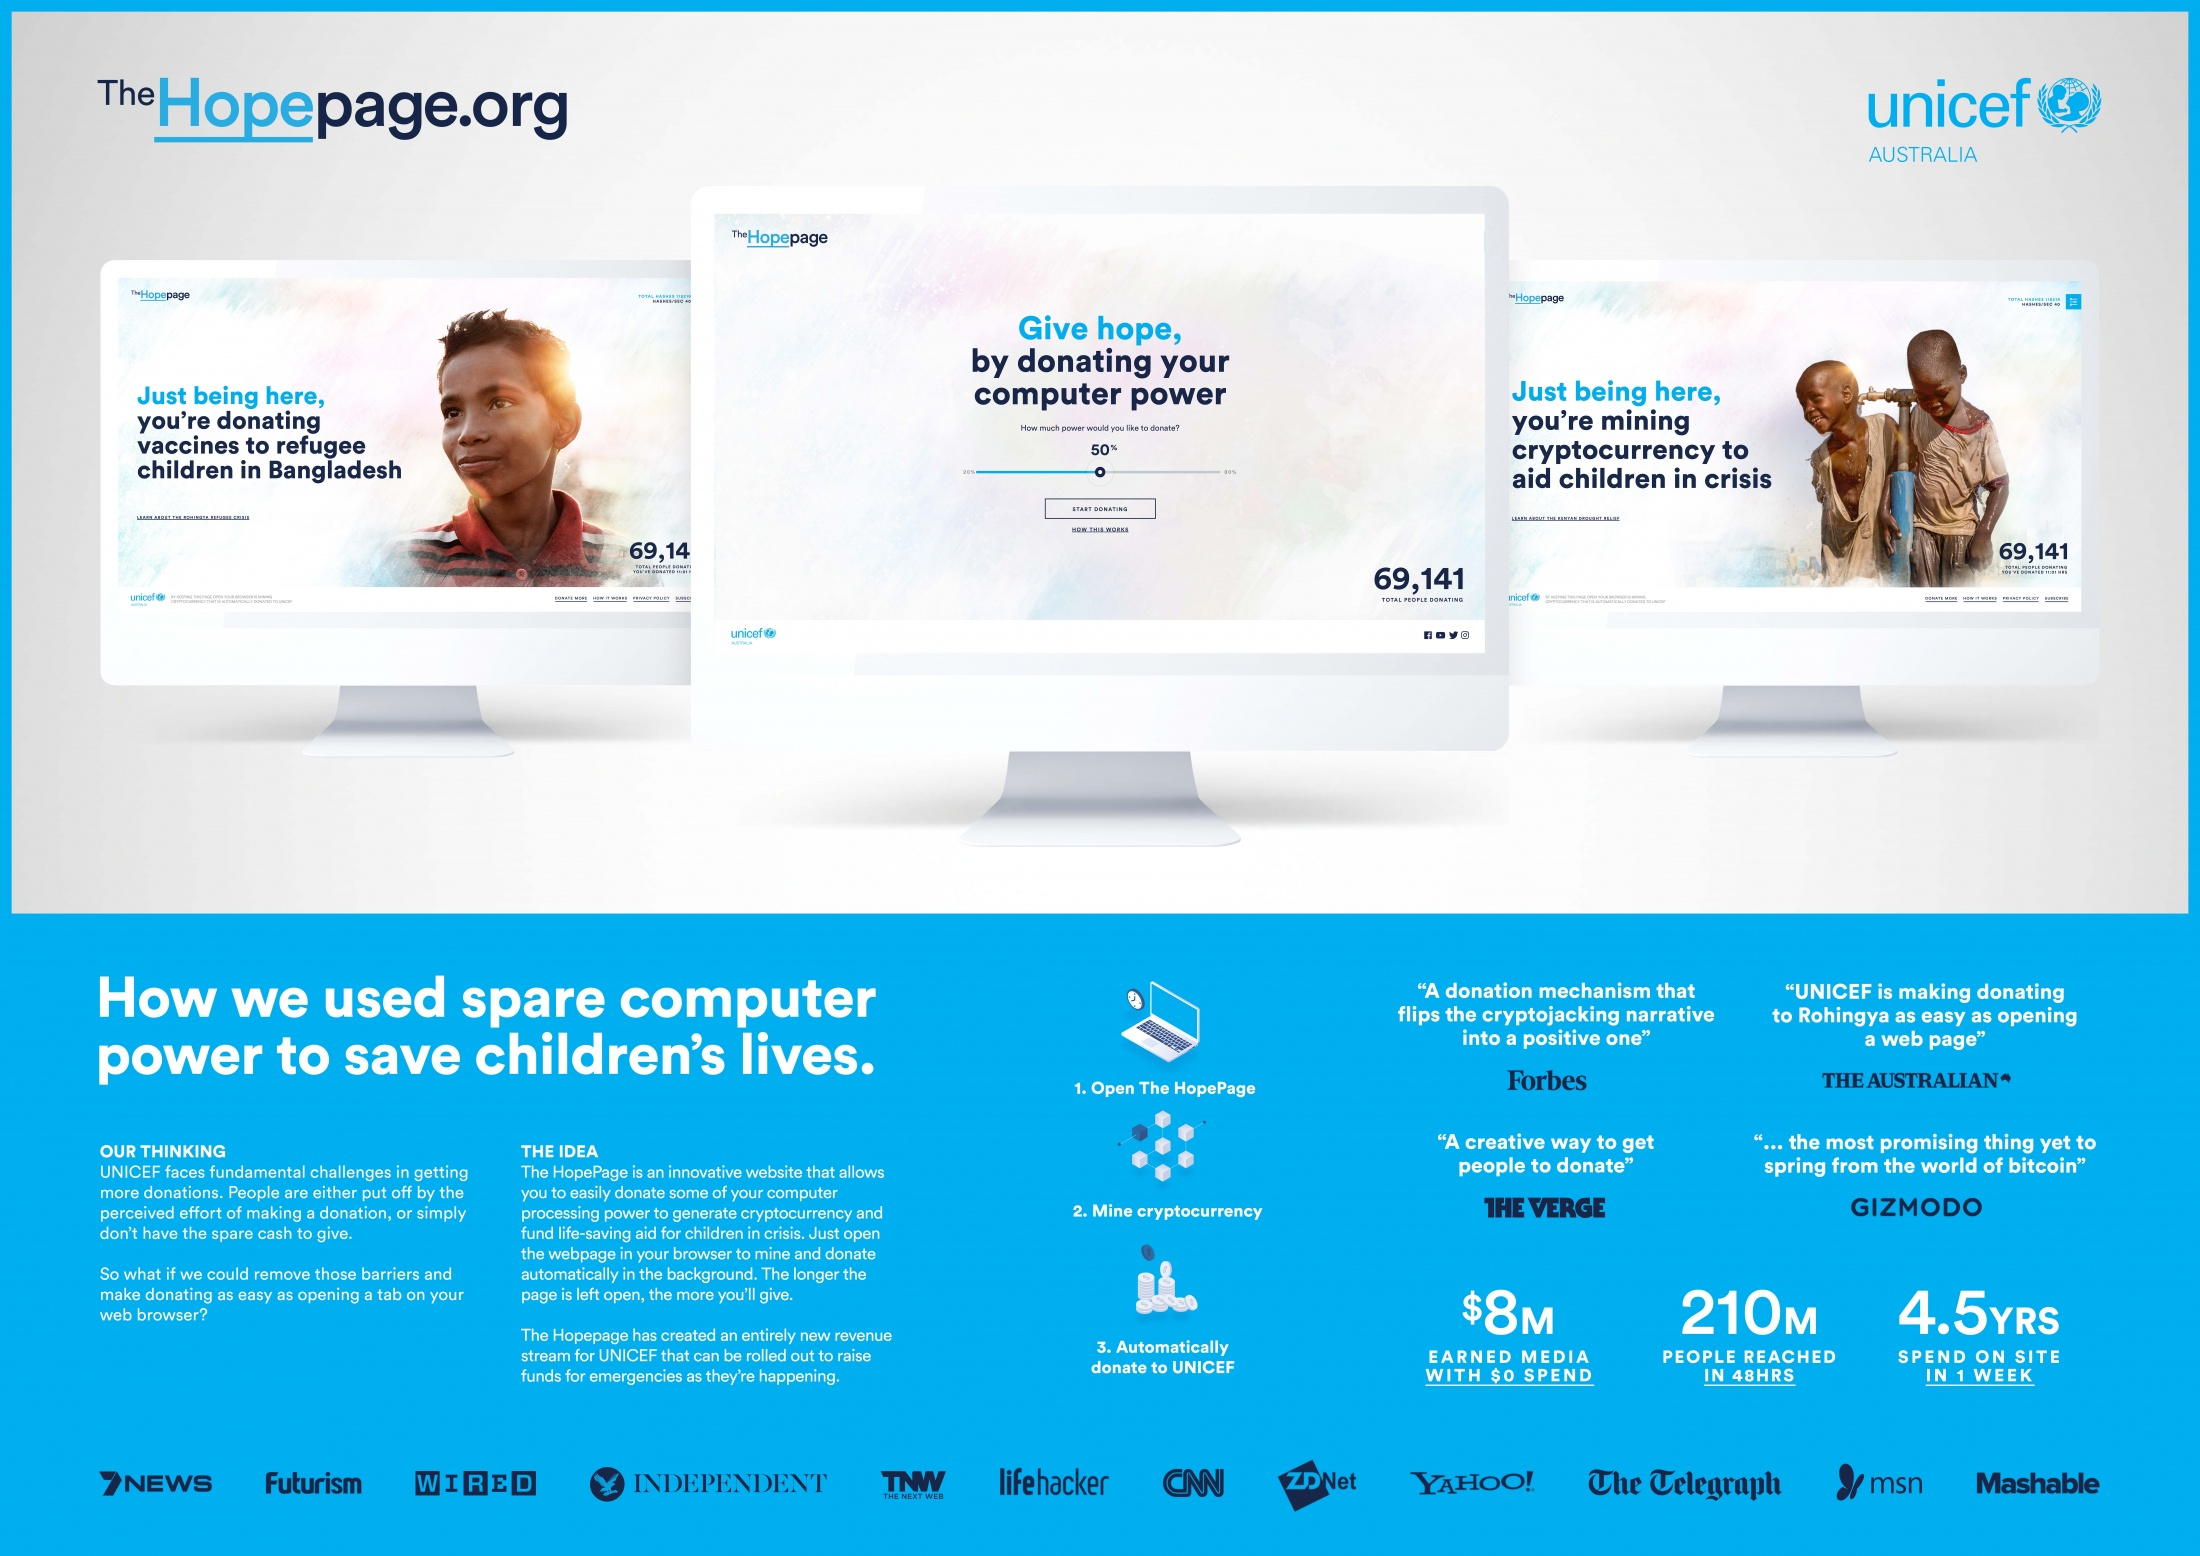 Image Media for The HopePage